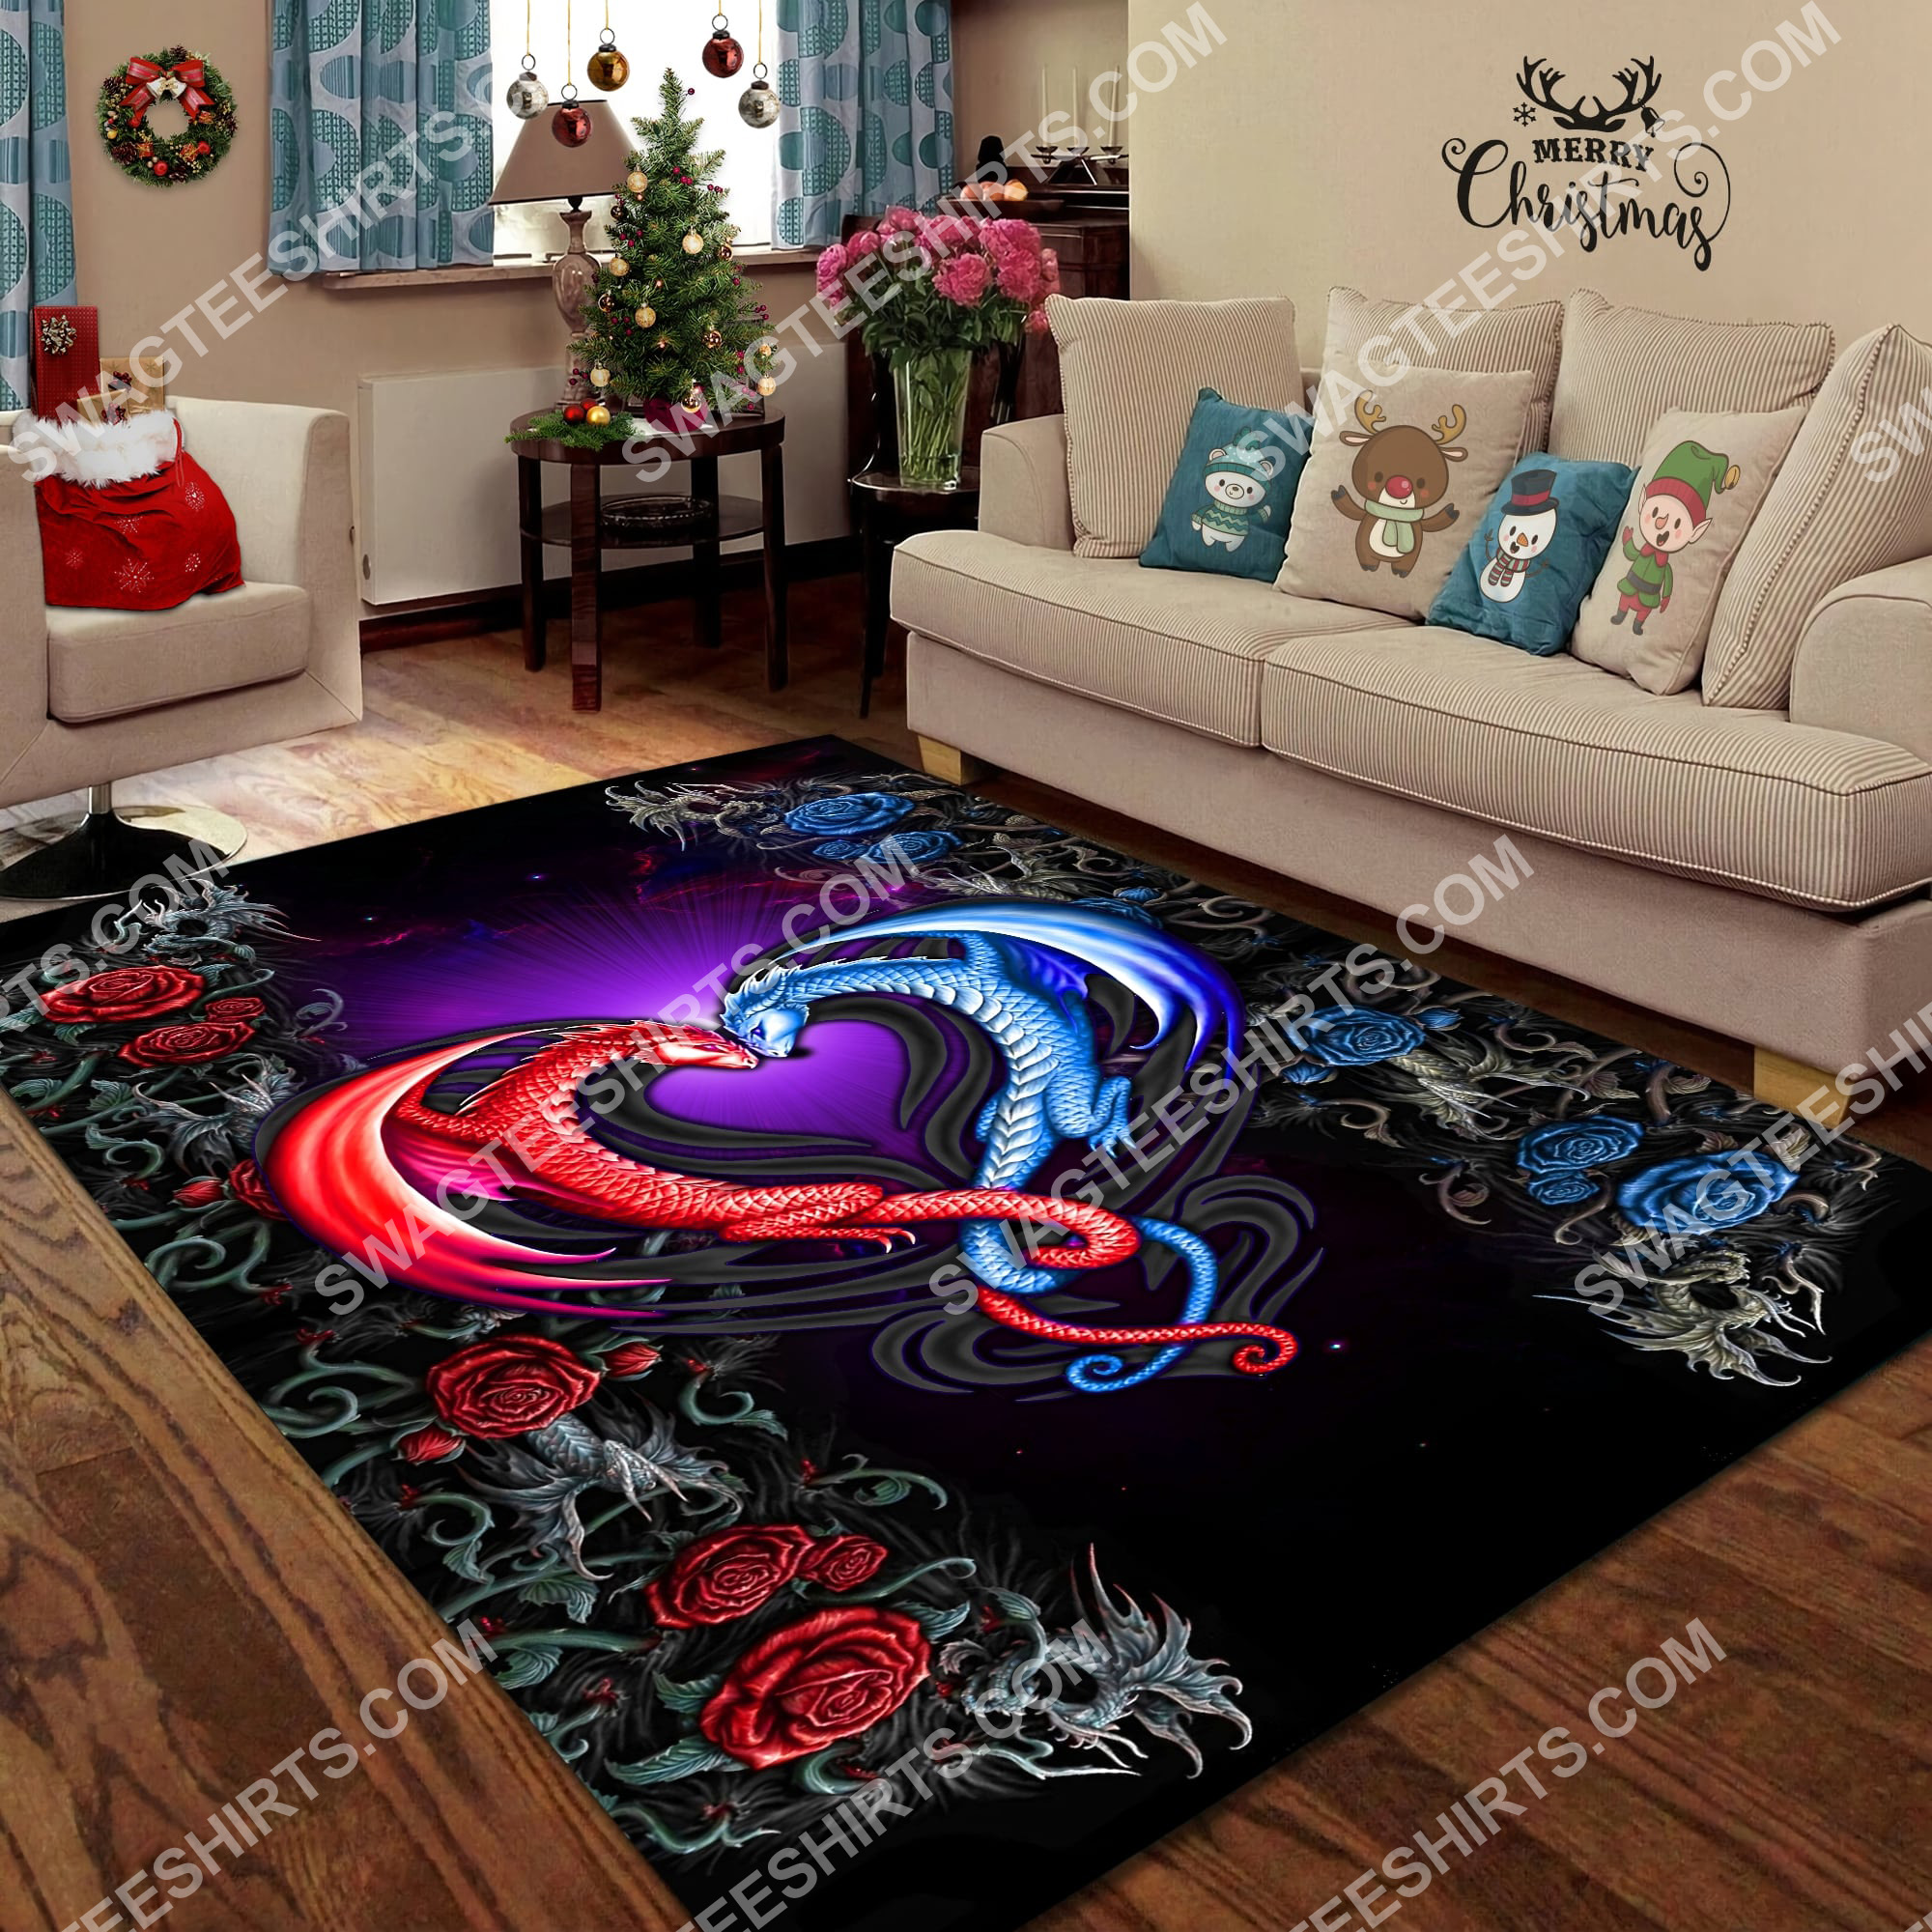 flower dragon couples painting art all over printed rug 3(1)